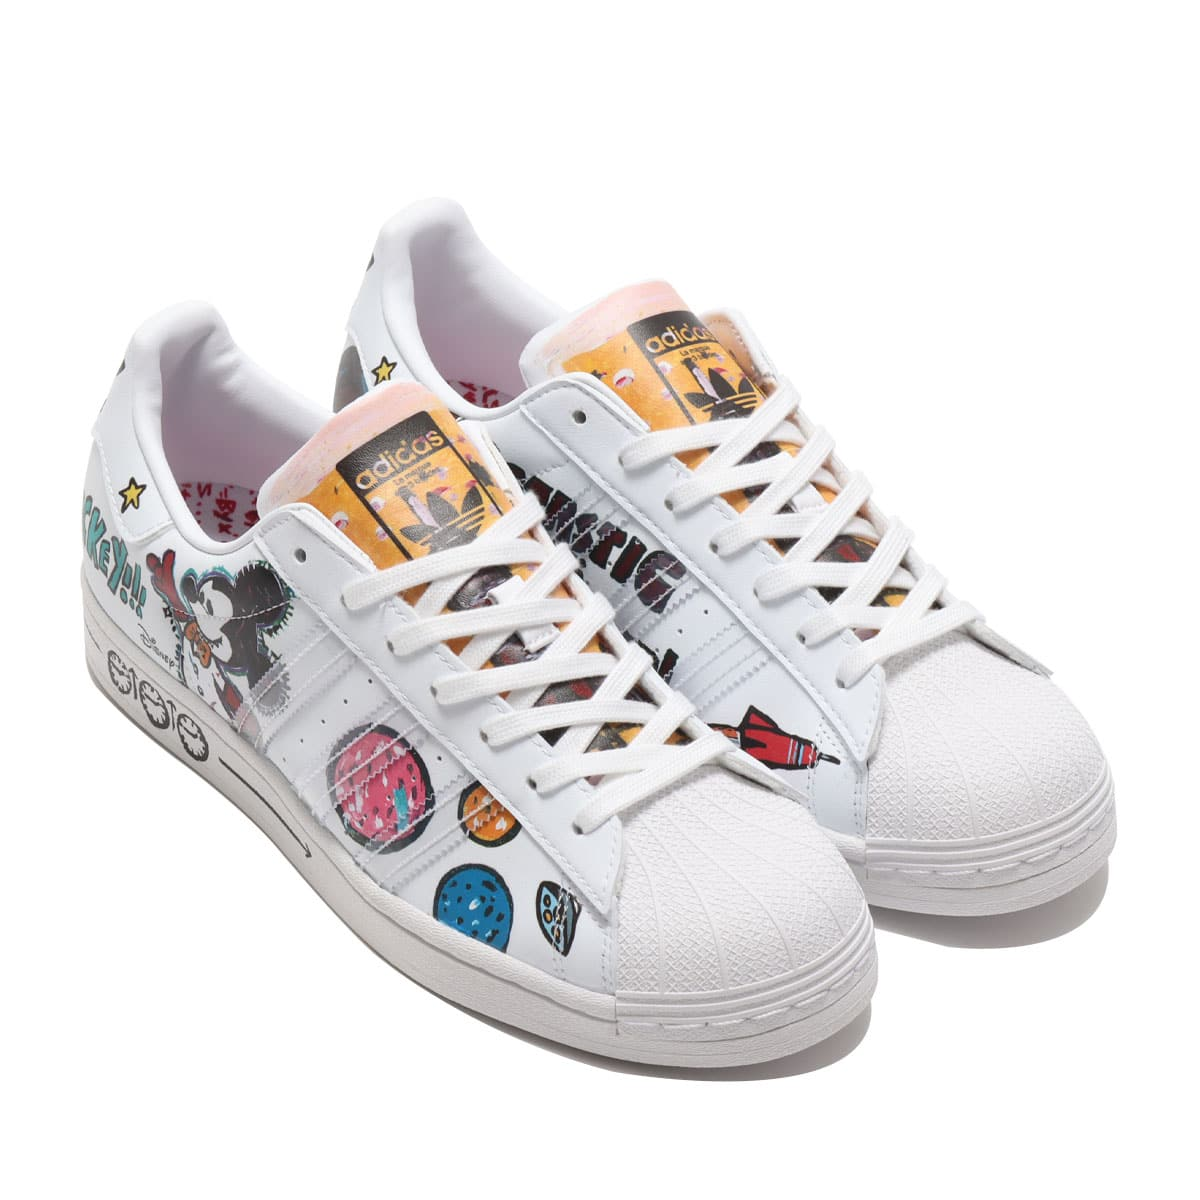 """adidas SUPERSTAR """"Kasing Lung x Mickey Mouse x adidas Mickey Twist"""" FOOTWEAR WHITE/FOOTWEAR WHITE/CORE BLACK 20FW-S_photo_large"""